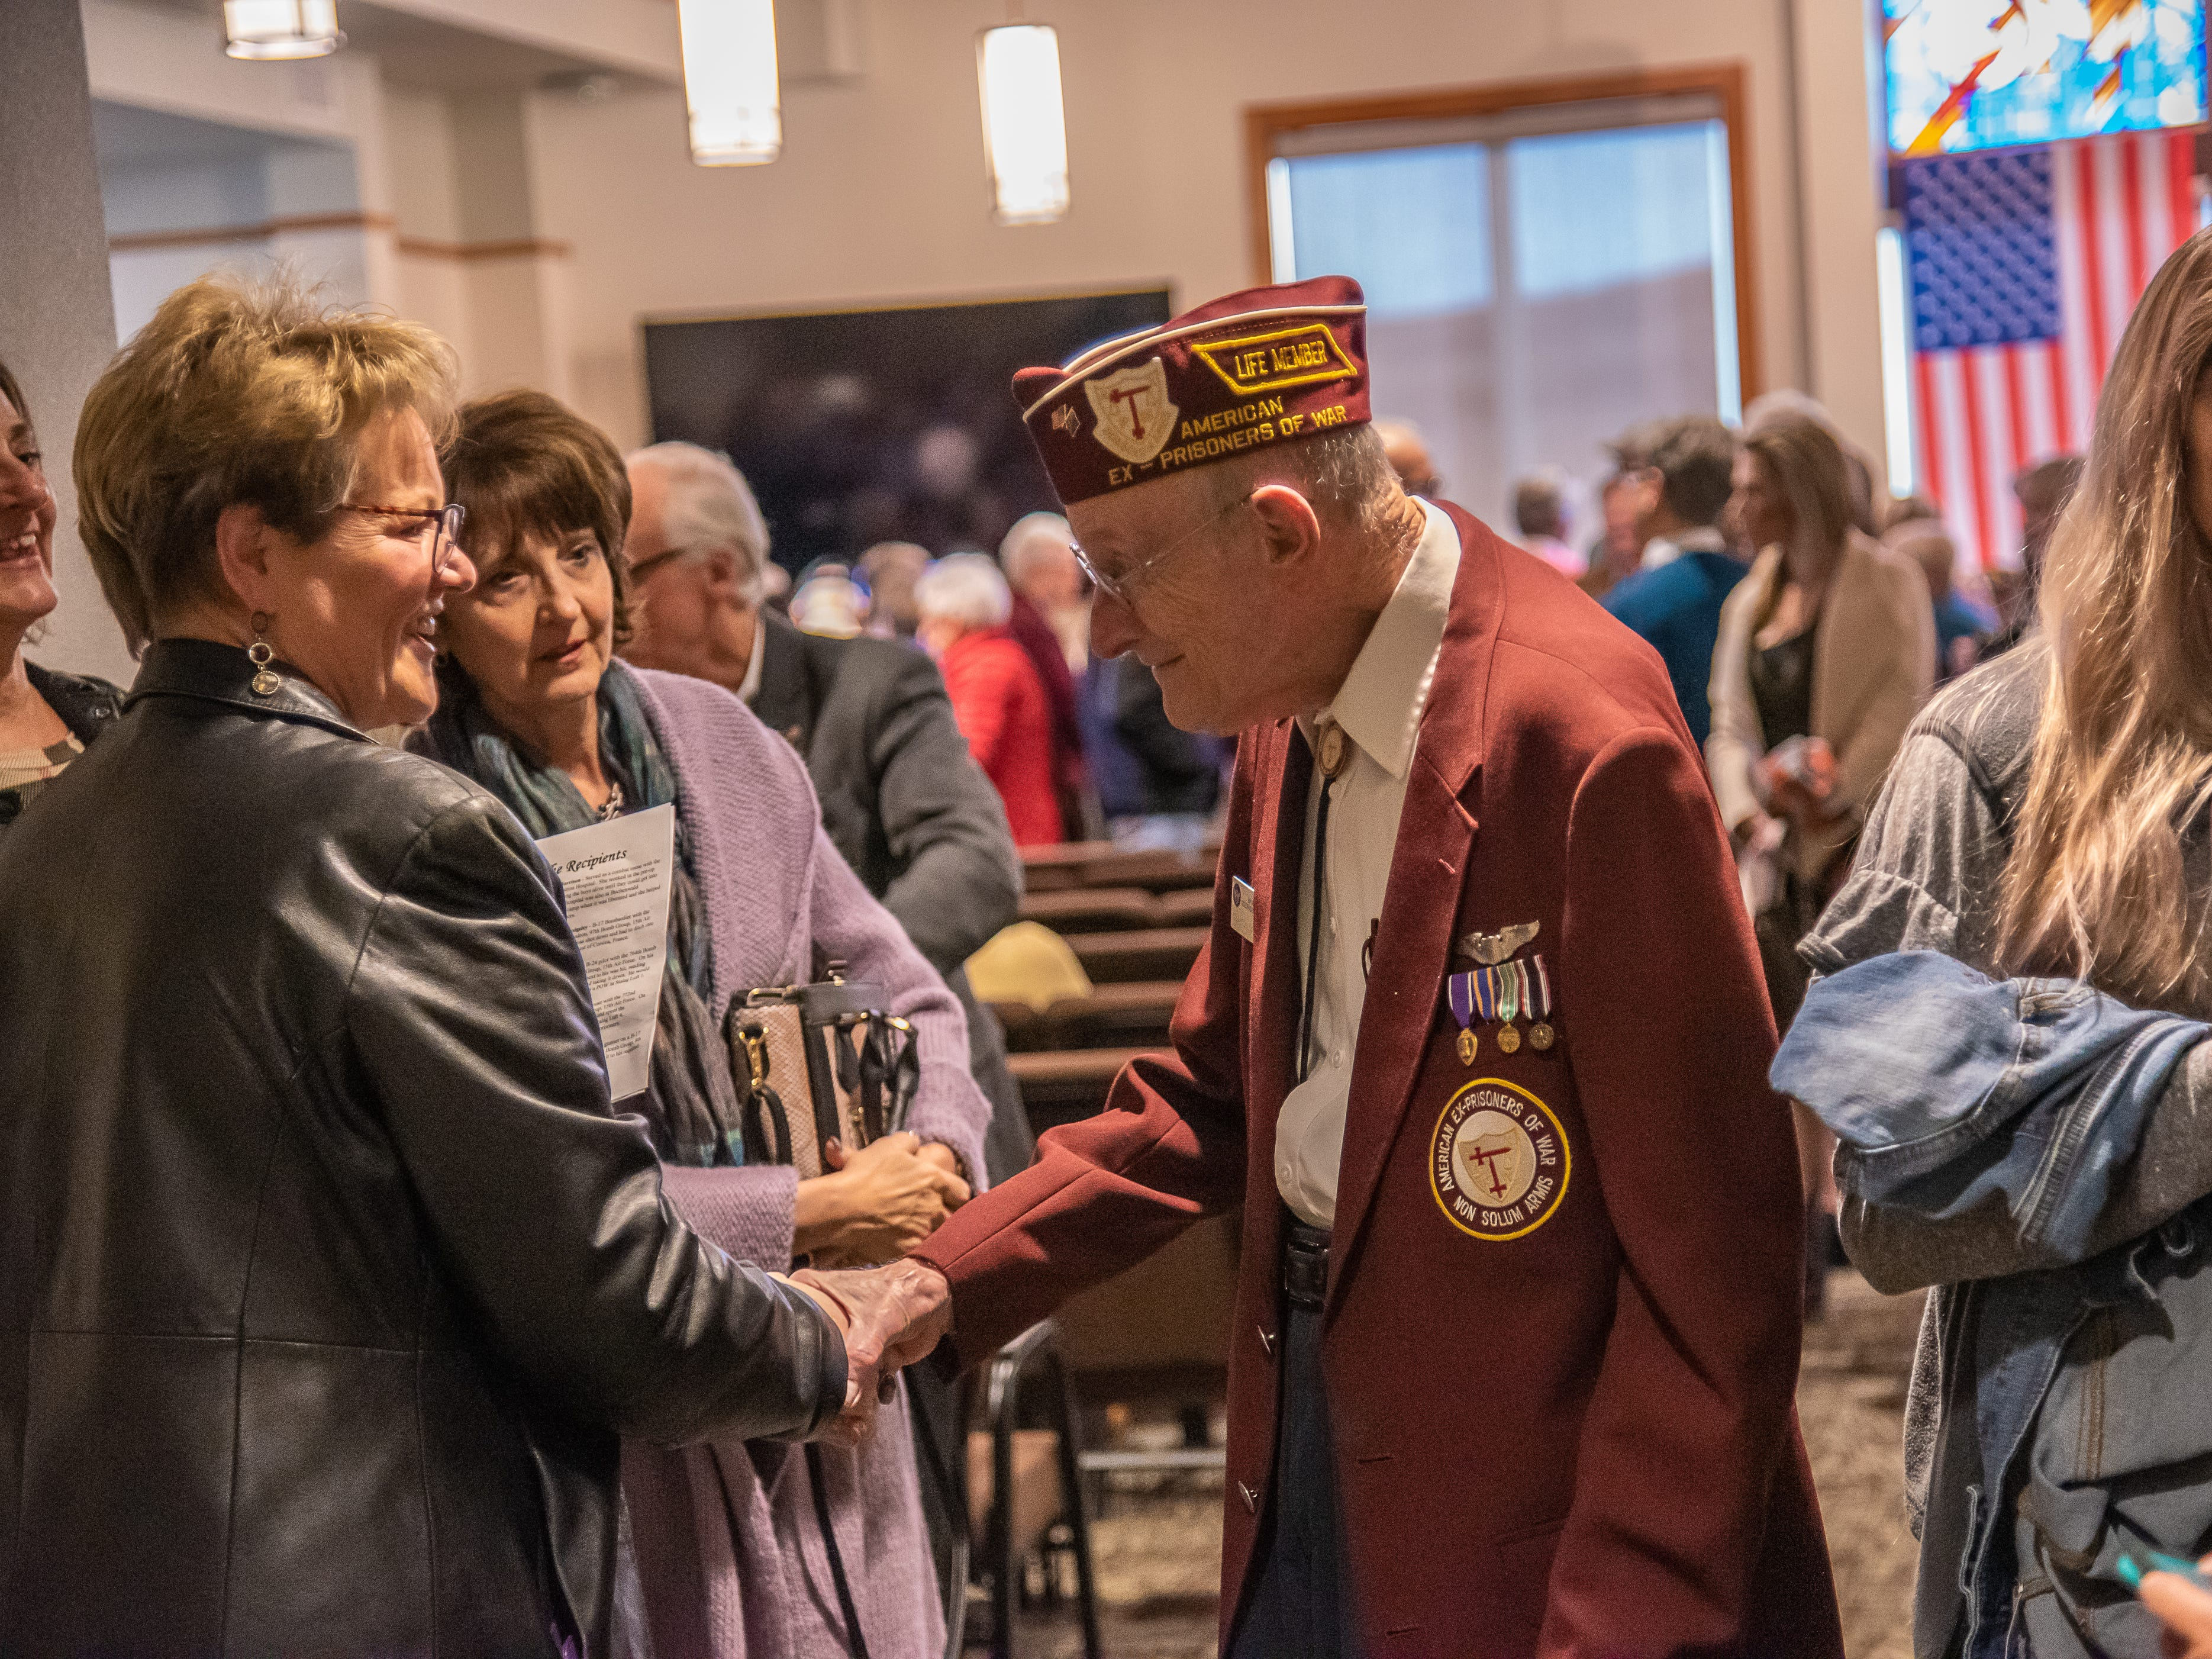 World War II veteran Clayton Nattier, resident of Lakewood, shakes hands with attendees of a Legion of Honor Medal ceremony on Monday, February 4, 2019 at  the Good Samaritan Water Valley Resort in Windsor.  Nattier was a POW in the prison camp Stalag Luft 1.